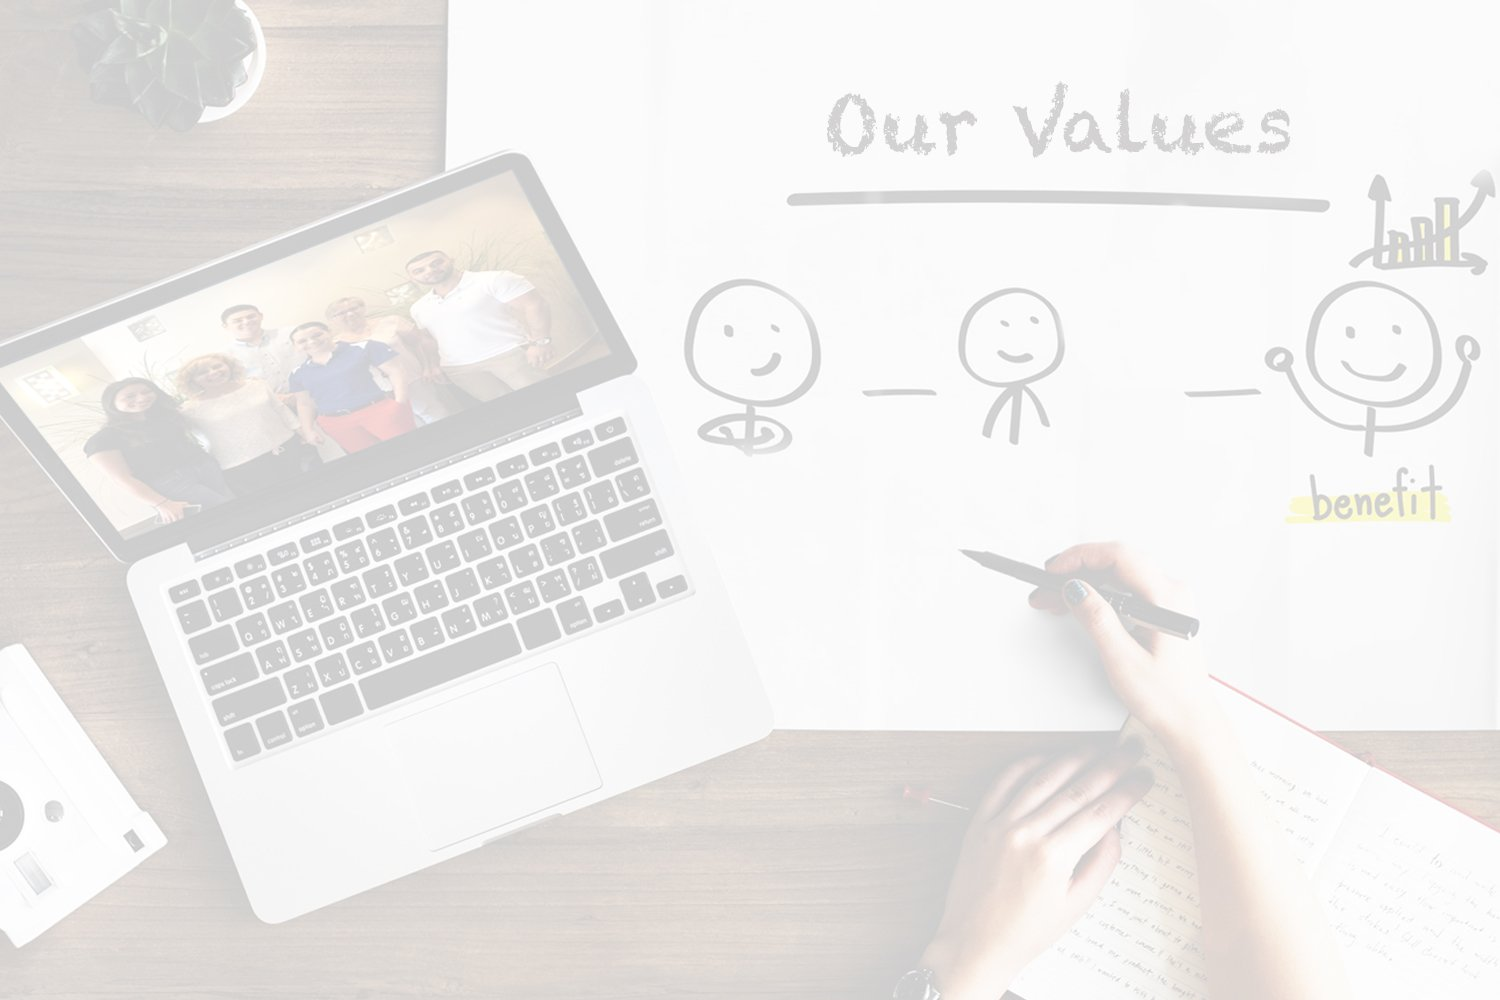 How ProServeIT's Corporate Values Benefit You!